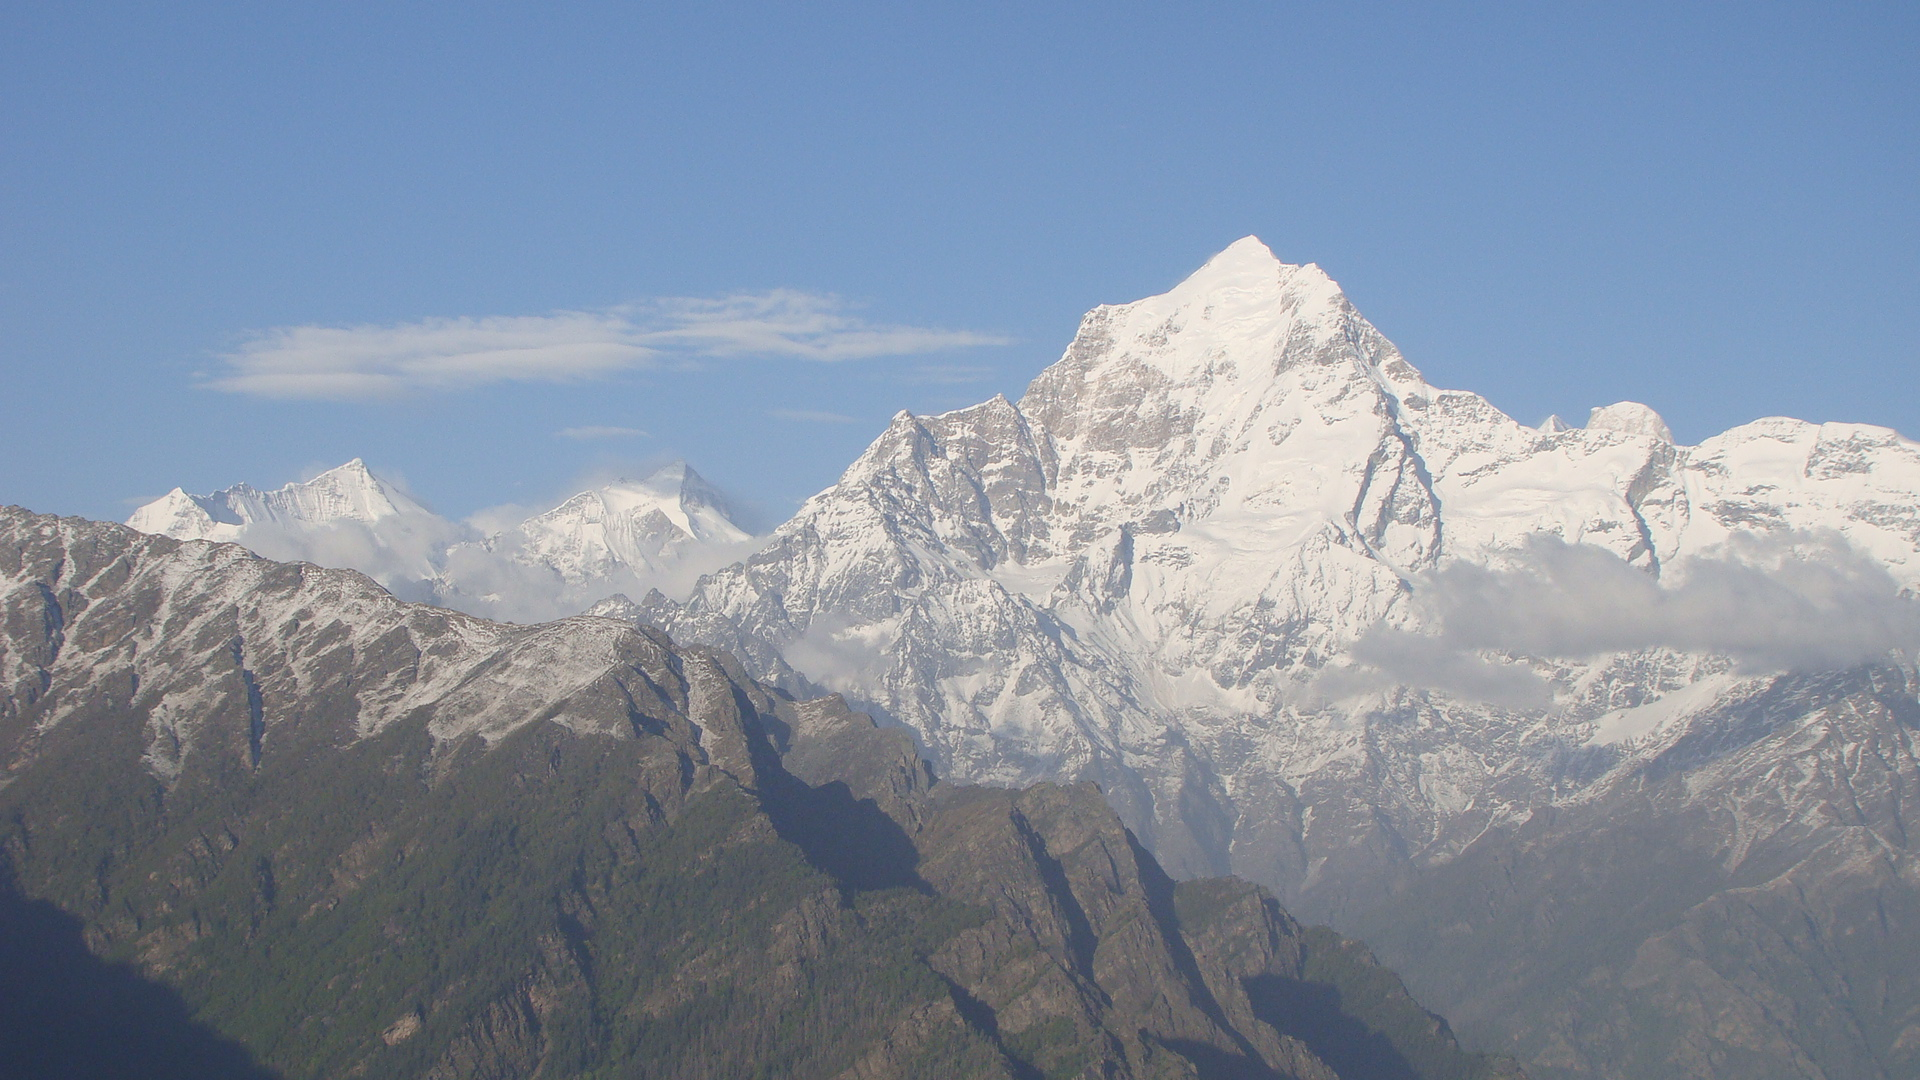 Dazzling Dunagiri with sister peaks forming north wall of Nandadevi Inner Sanctuary